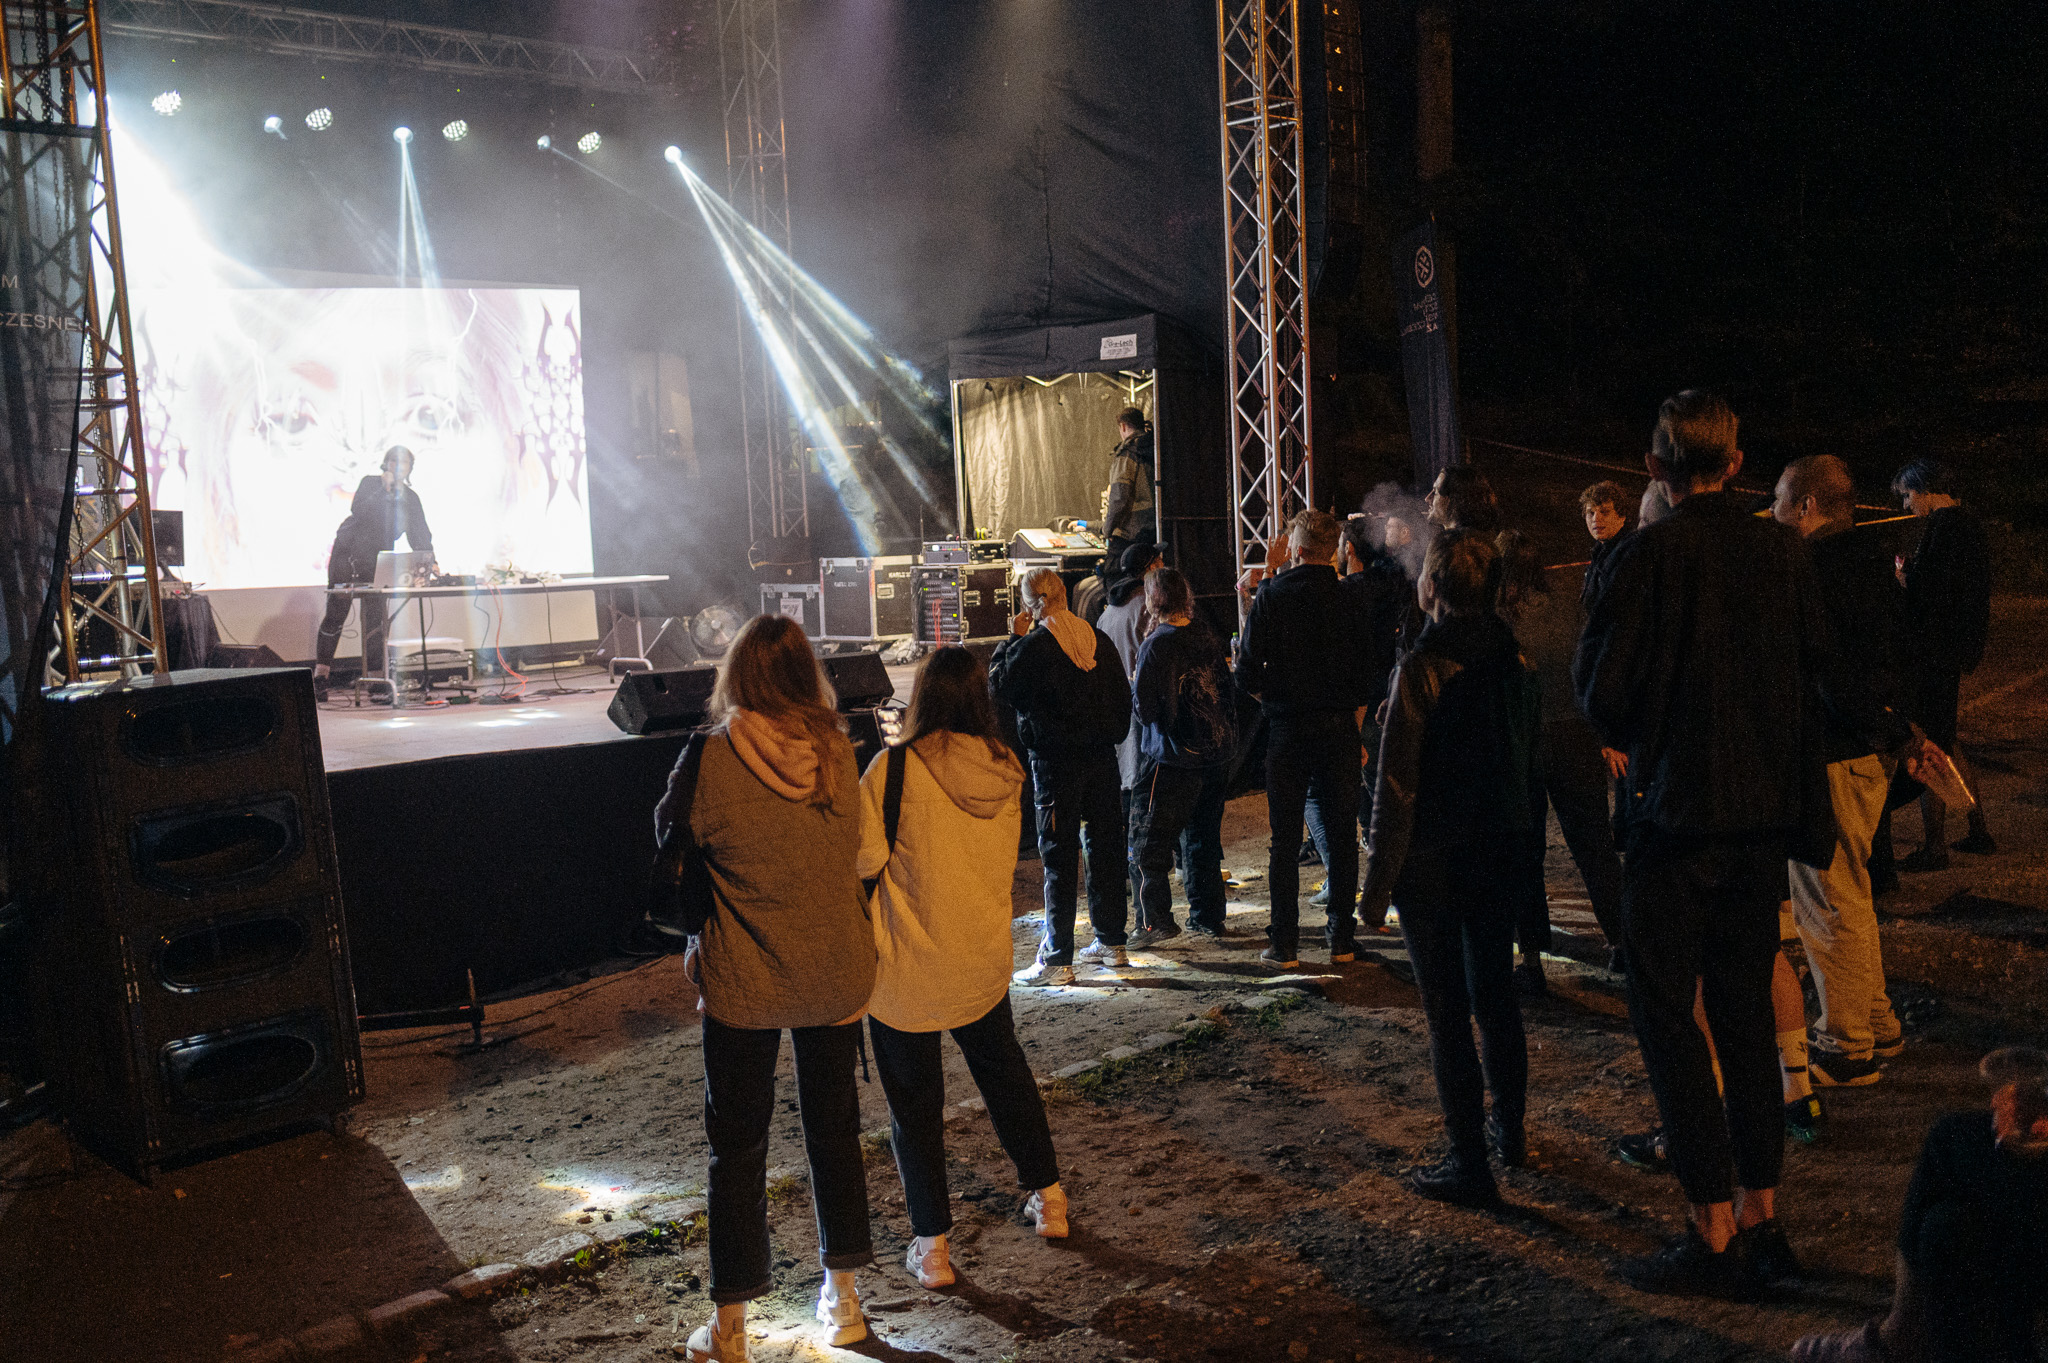 the InProgress festival organised by the Łaźnia Centre for Contemporary Art, 2021, Gdańsk